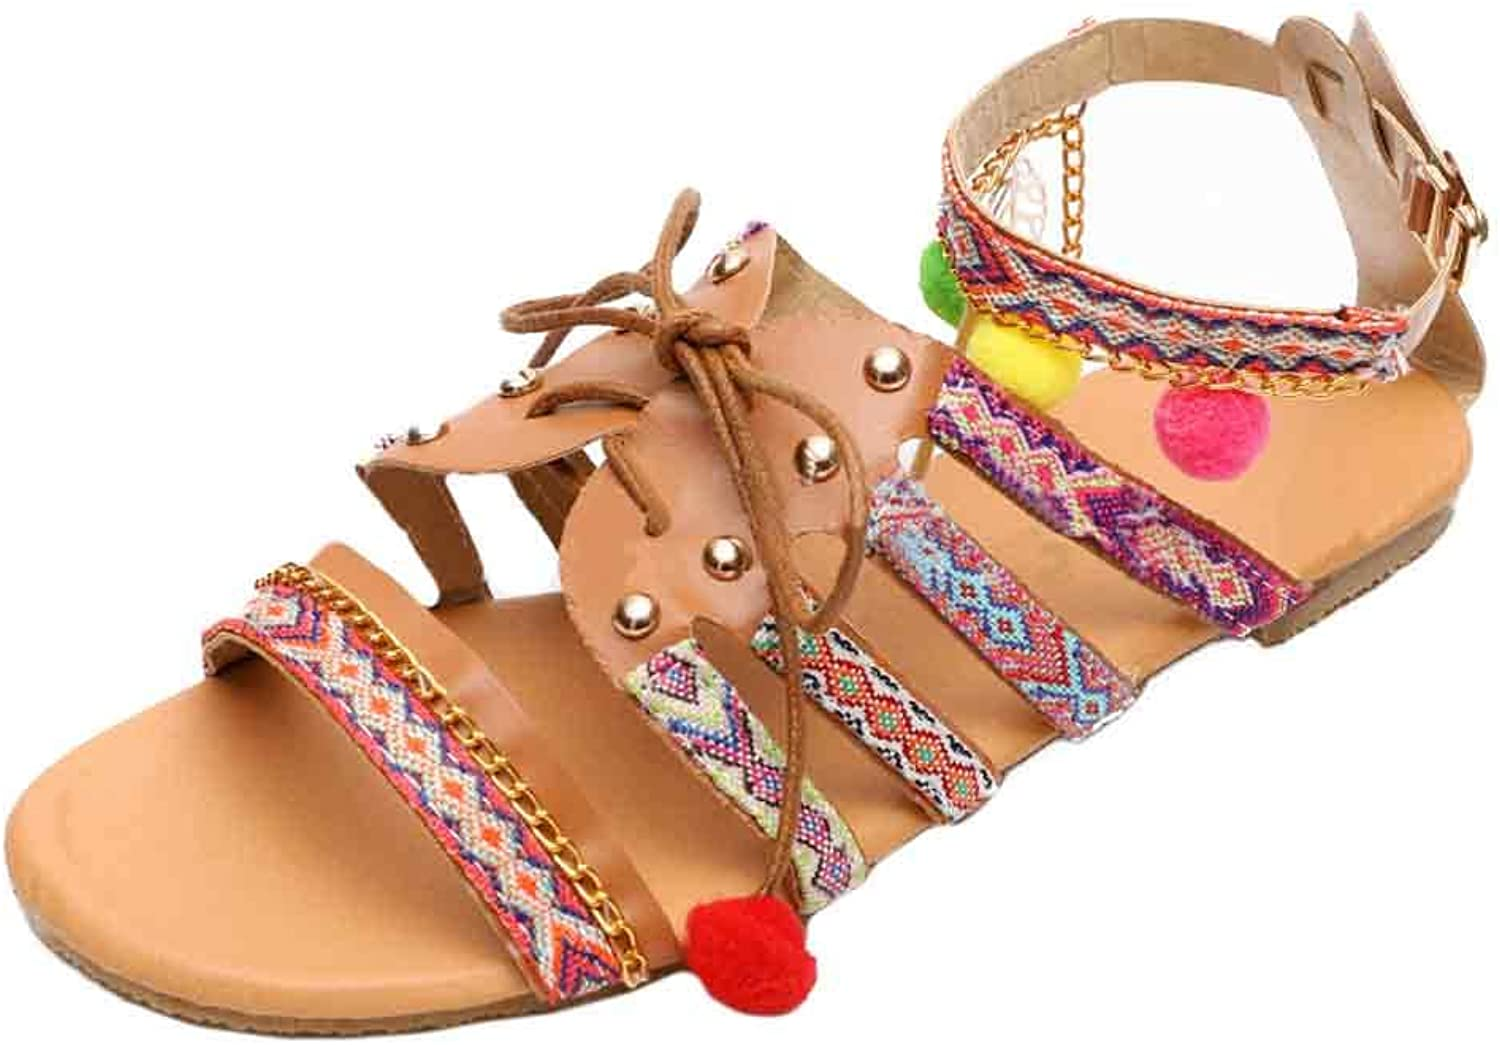 Huicai Women's Flat Sandals Open Toe Summer Bohemian National Style Slippers